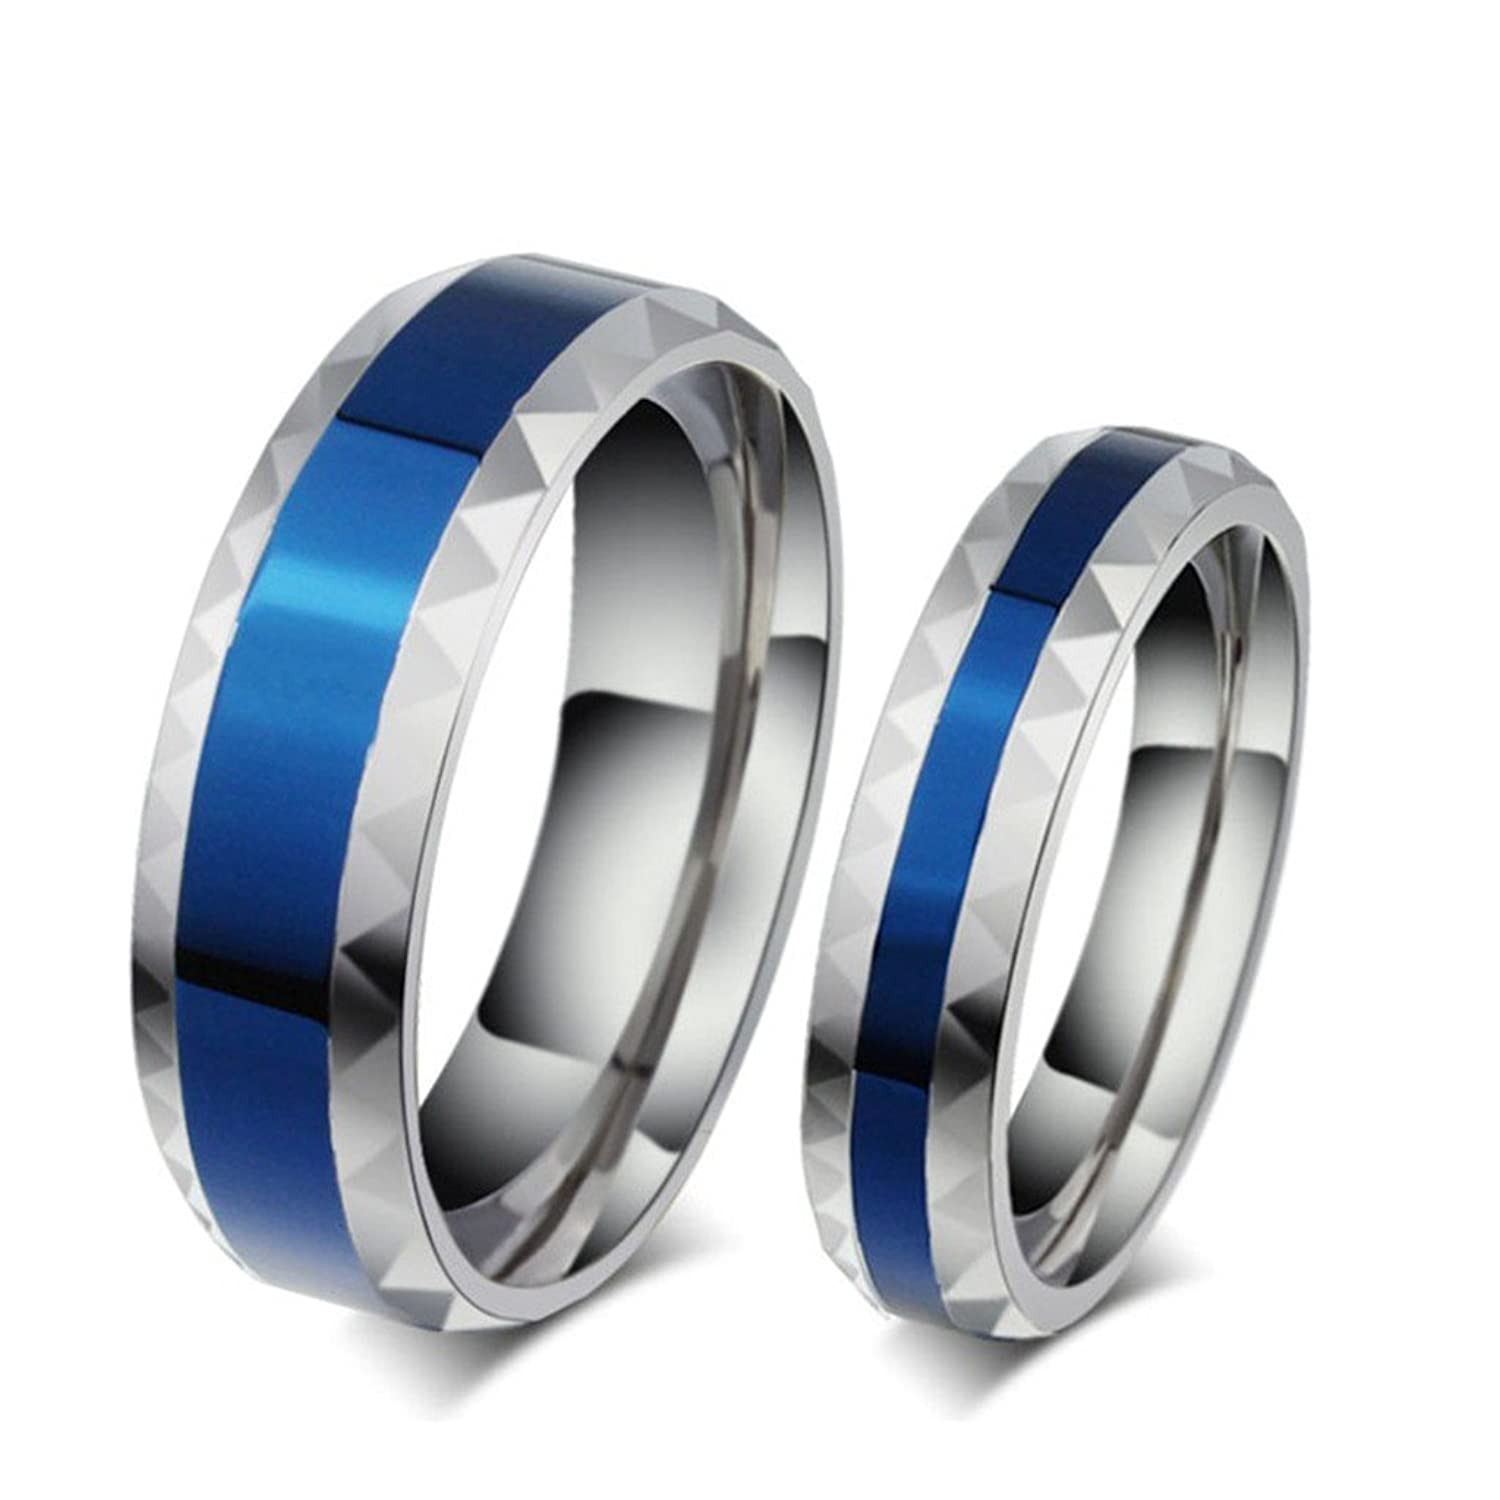 ROWAG Romantic Blue Plated 6MM Mens Titanium Stainless Steel Couple Wedding Bands for Him and Her 4MM Womens Promise Engagement Rings